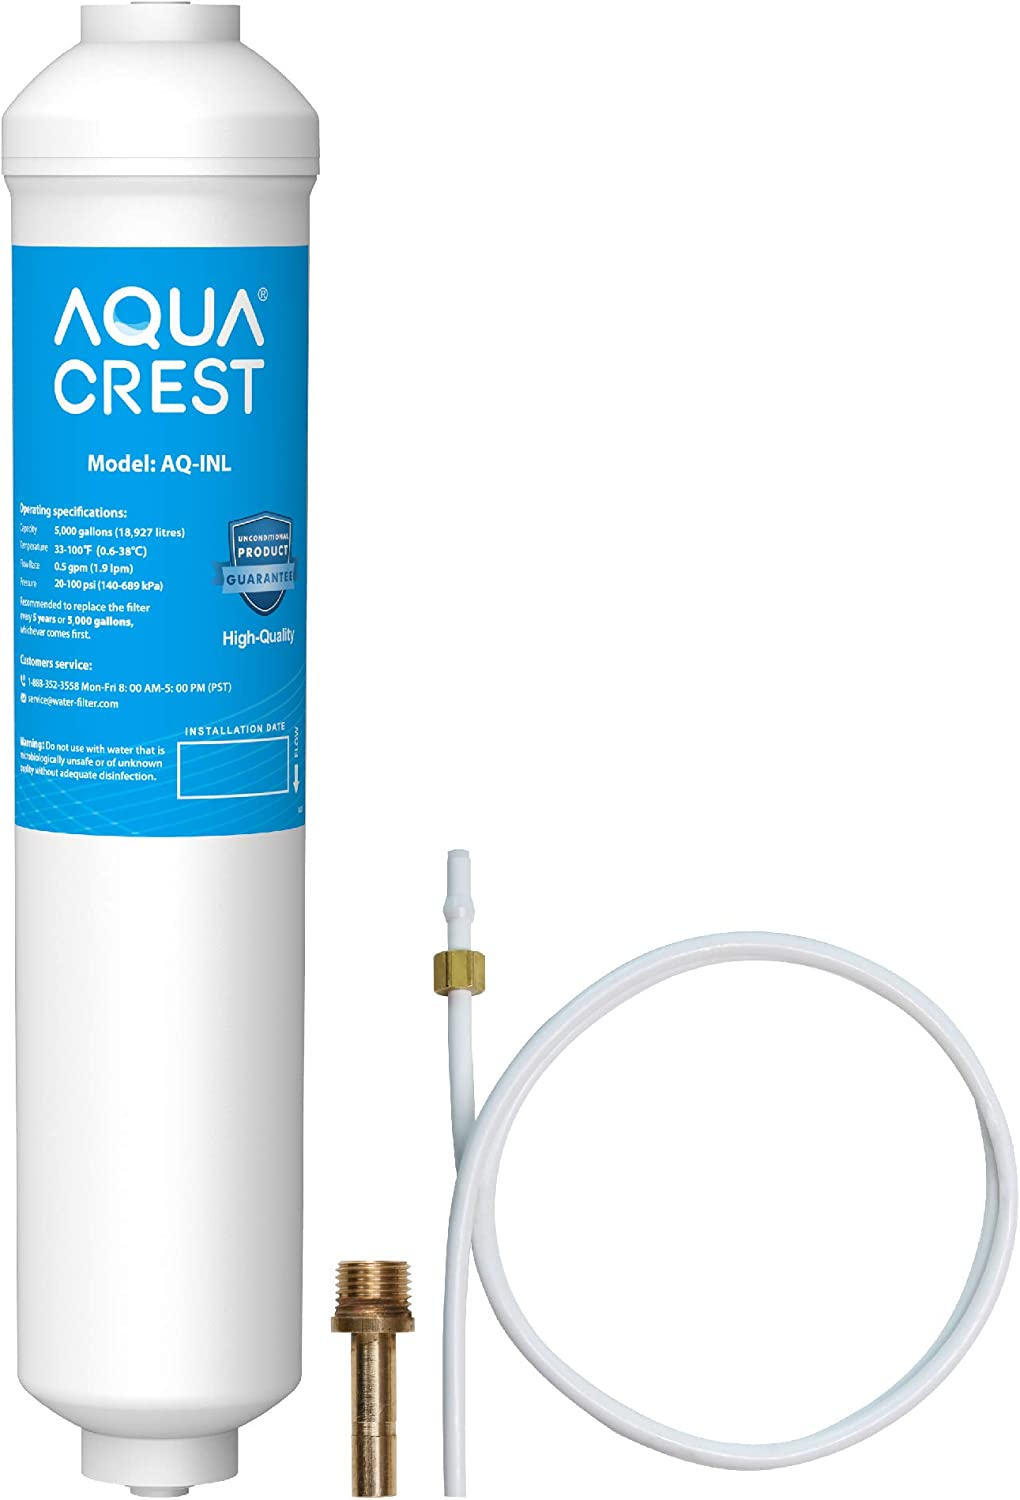 AquaCrest in-Line Refrigerator Filter, 5 Year High Capacity Drinking Water Filtration System with Direct Connect Fittings, Removes Lead, Chlorine, Bad Taste & Odor